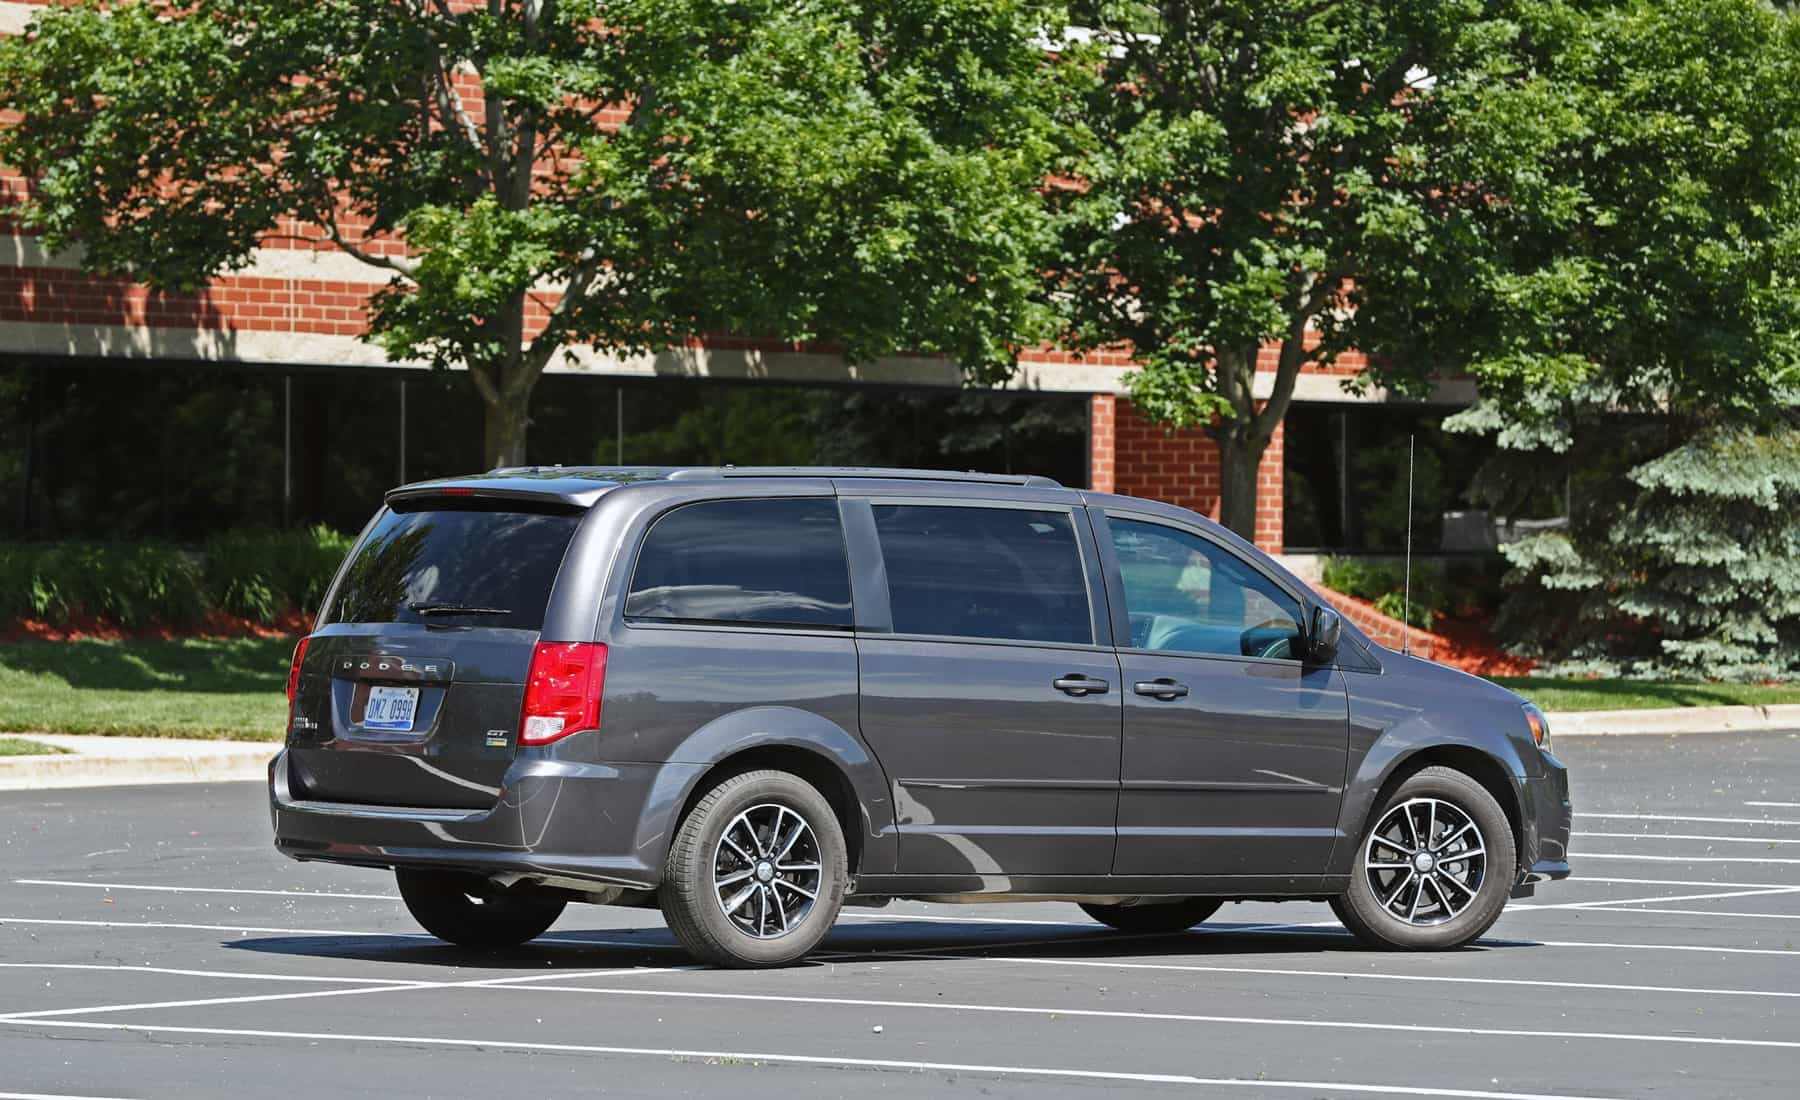 2017 Dodge Grand Caravan Exterior Side And Rear (Photo 9 of 47)